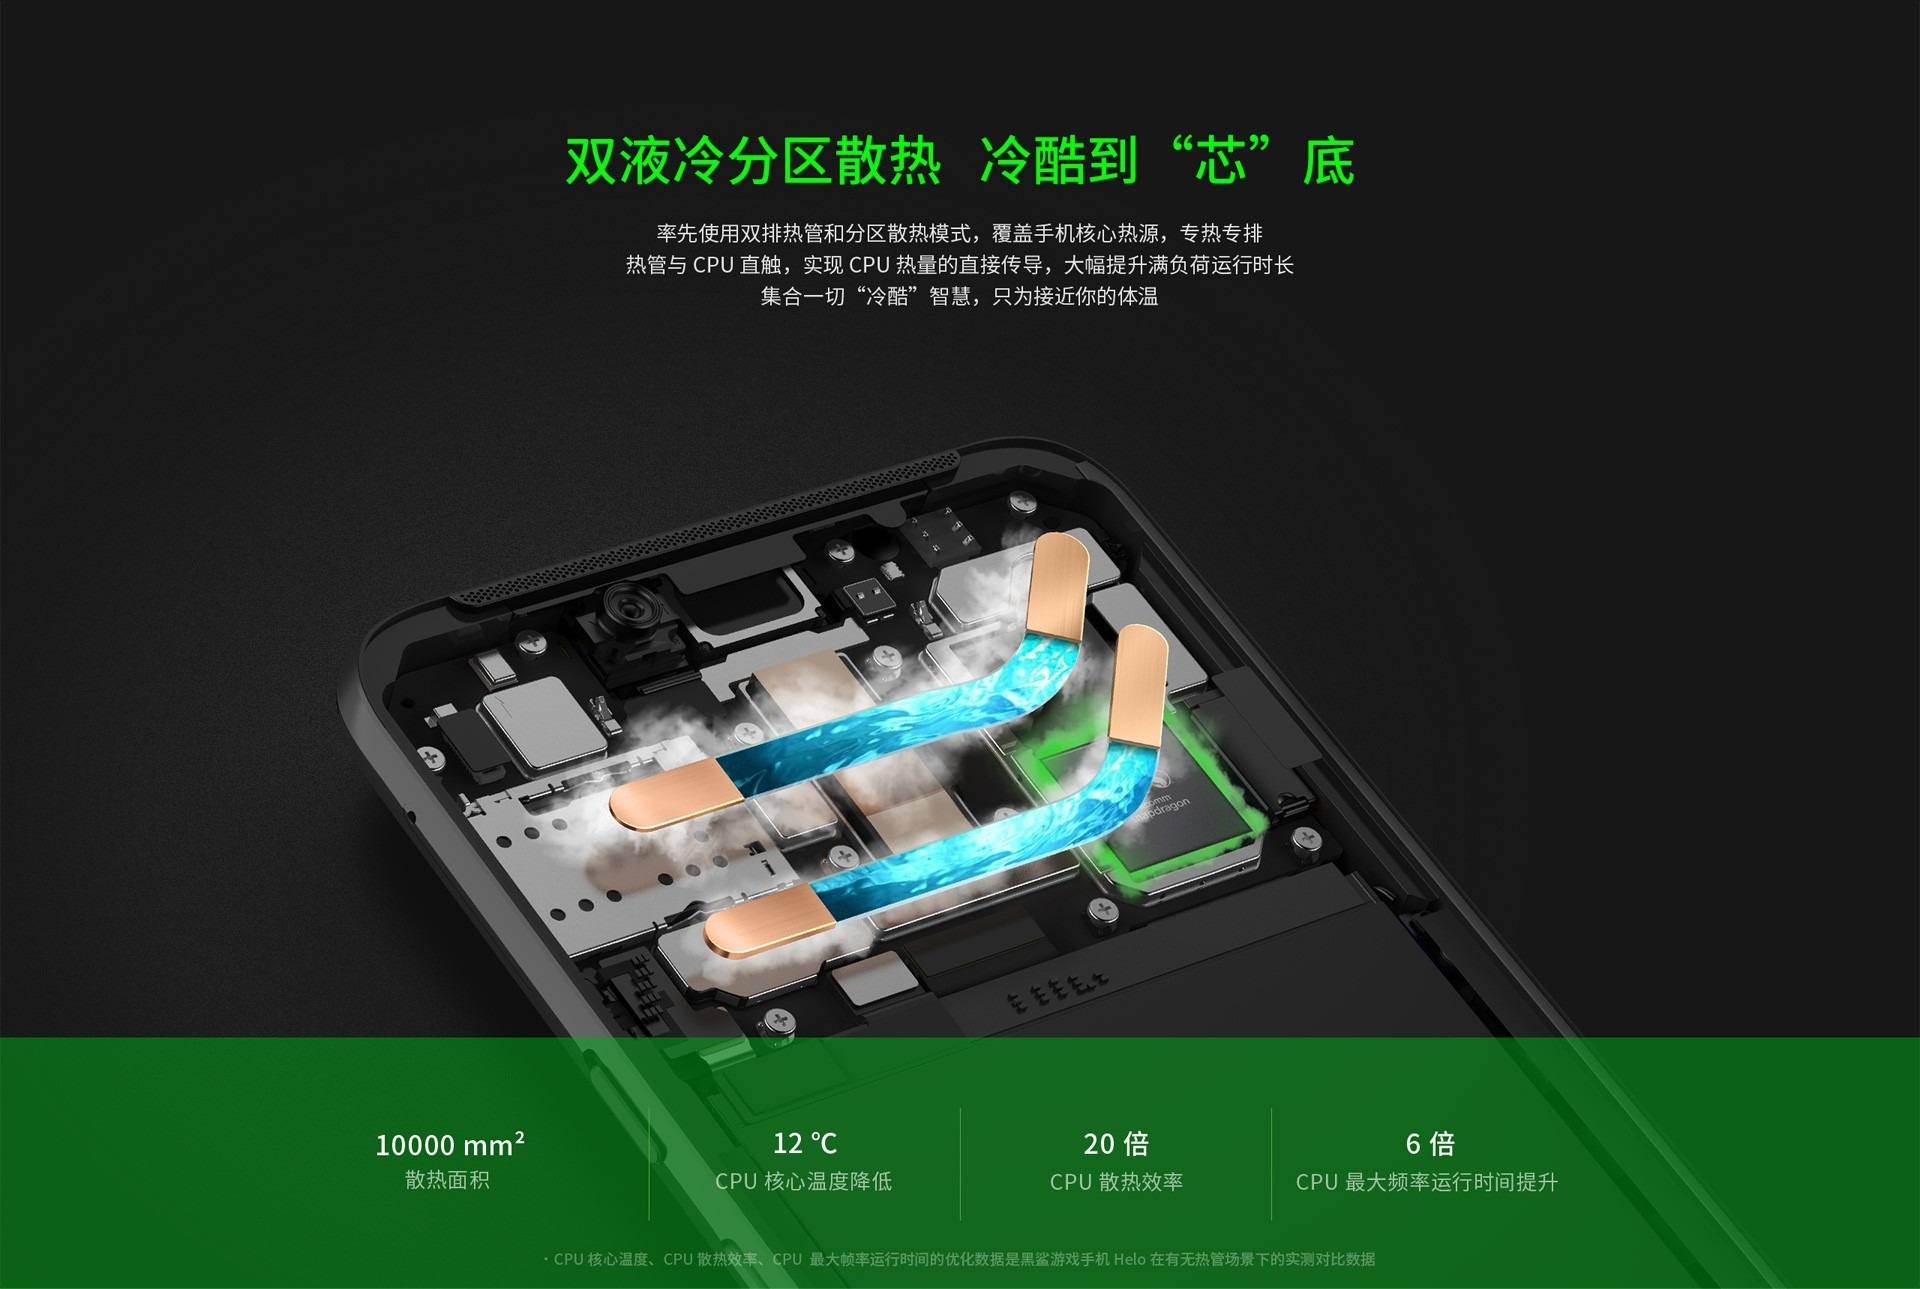 Xiaomi Black Shark Helo launched with up to 10GB RAM & Snapdragon 845 7